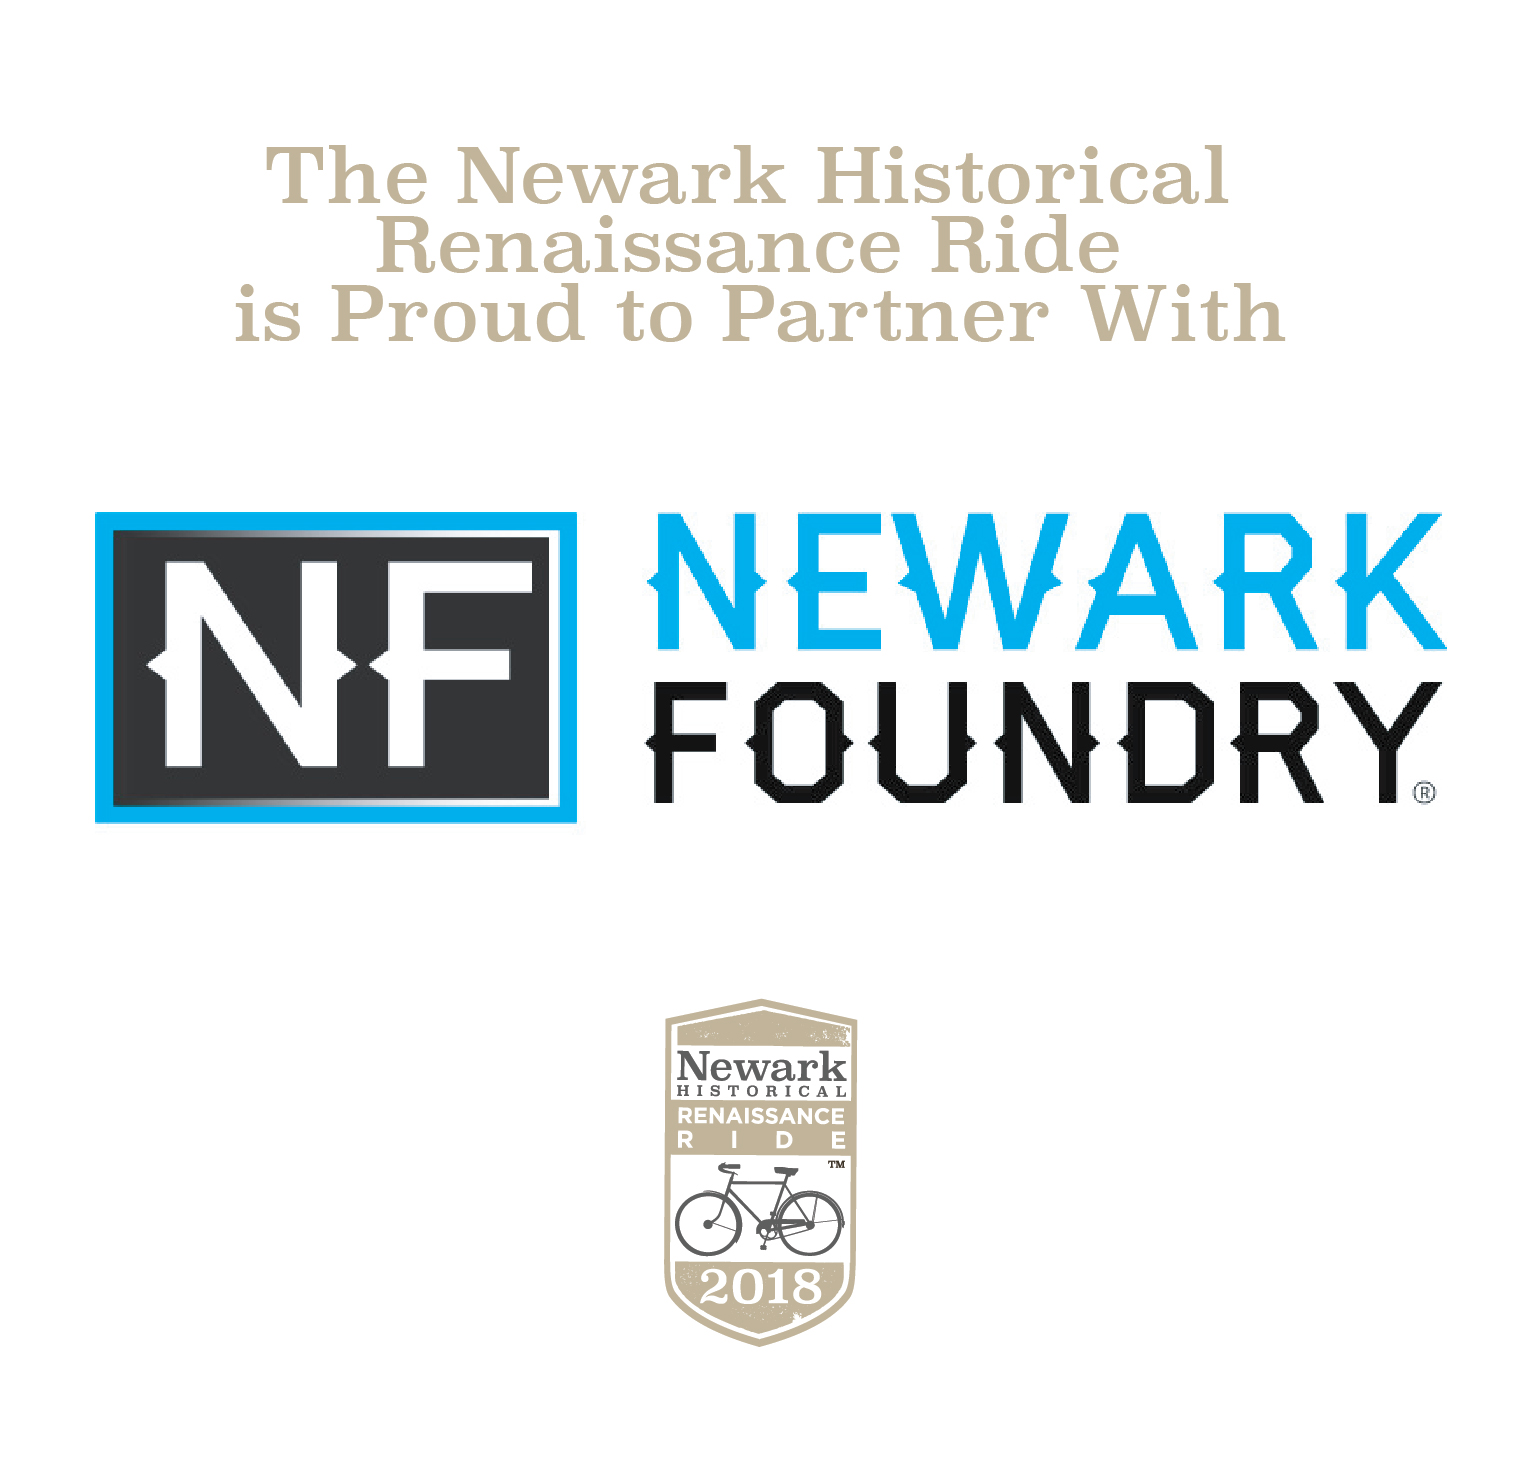 NewarkFoundaryThankYou copy.jpg